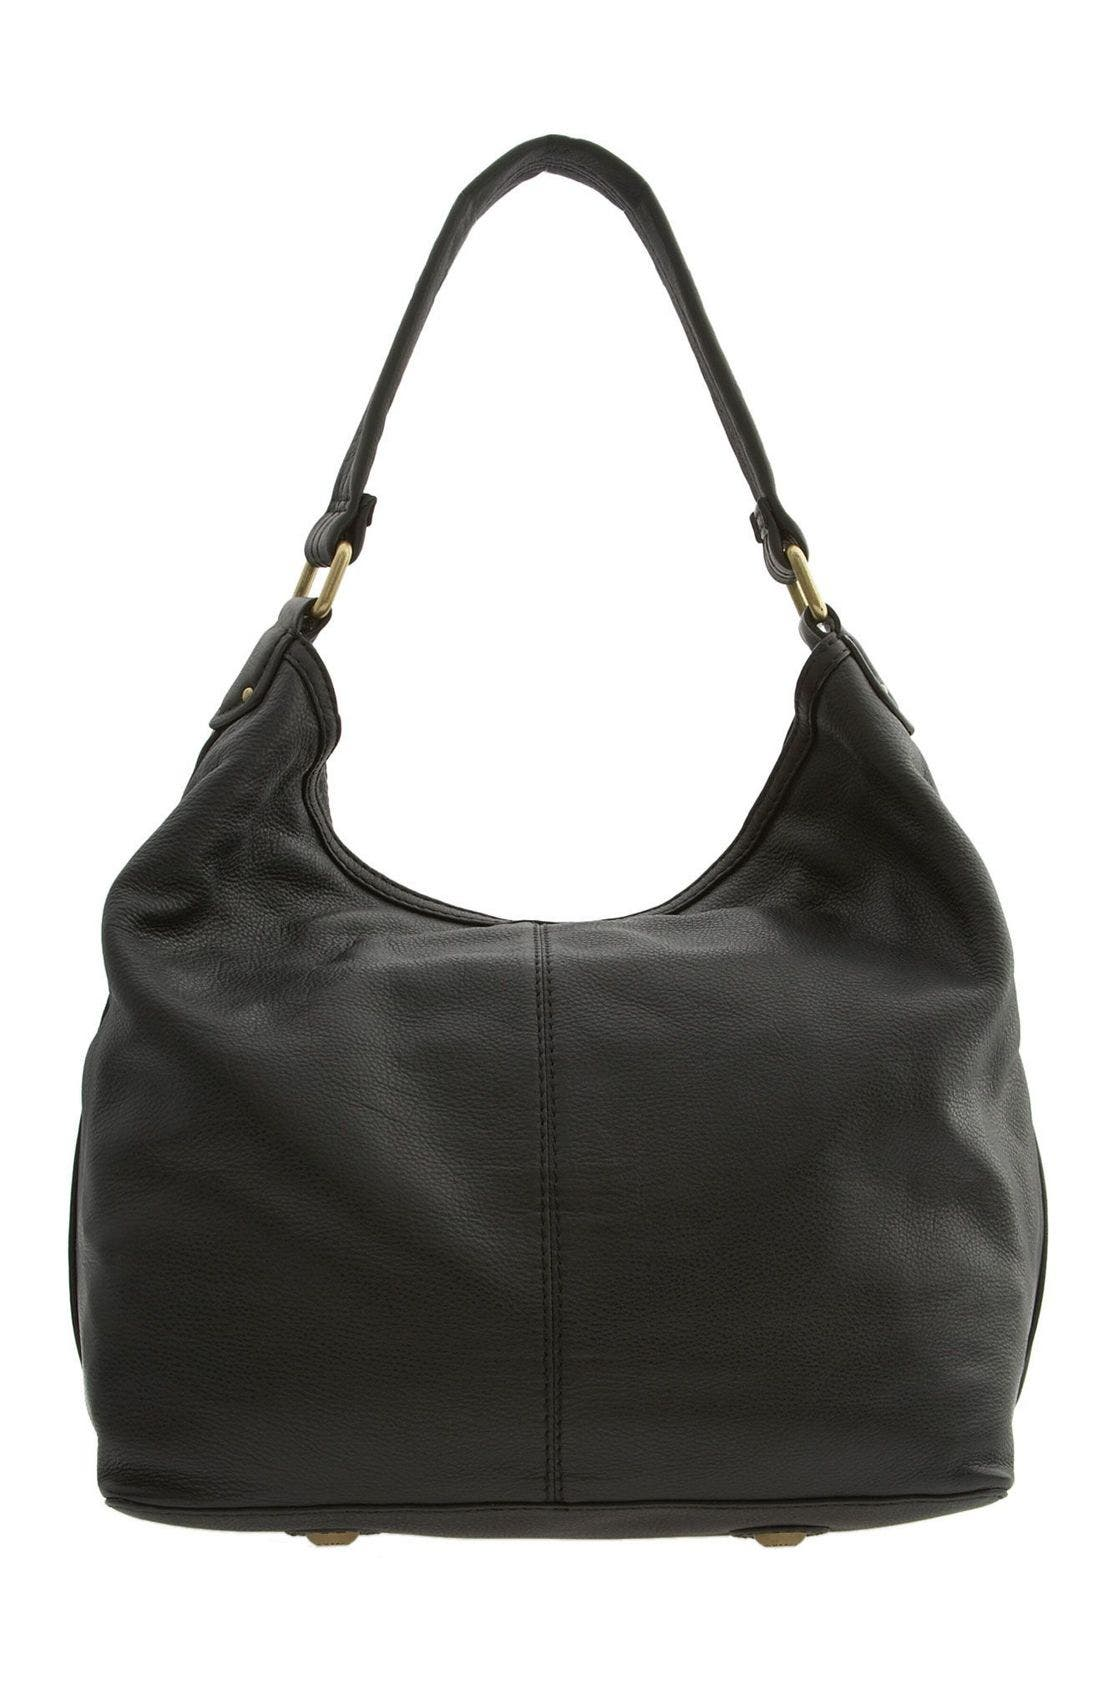 MARC BY MARC JACOBS 'Totally Turnlock - Faridah' Hobo Bag,                             Alternate thumbnail 4, color,                             001